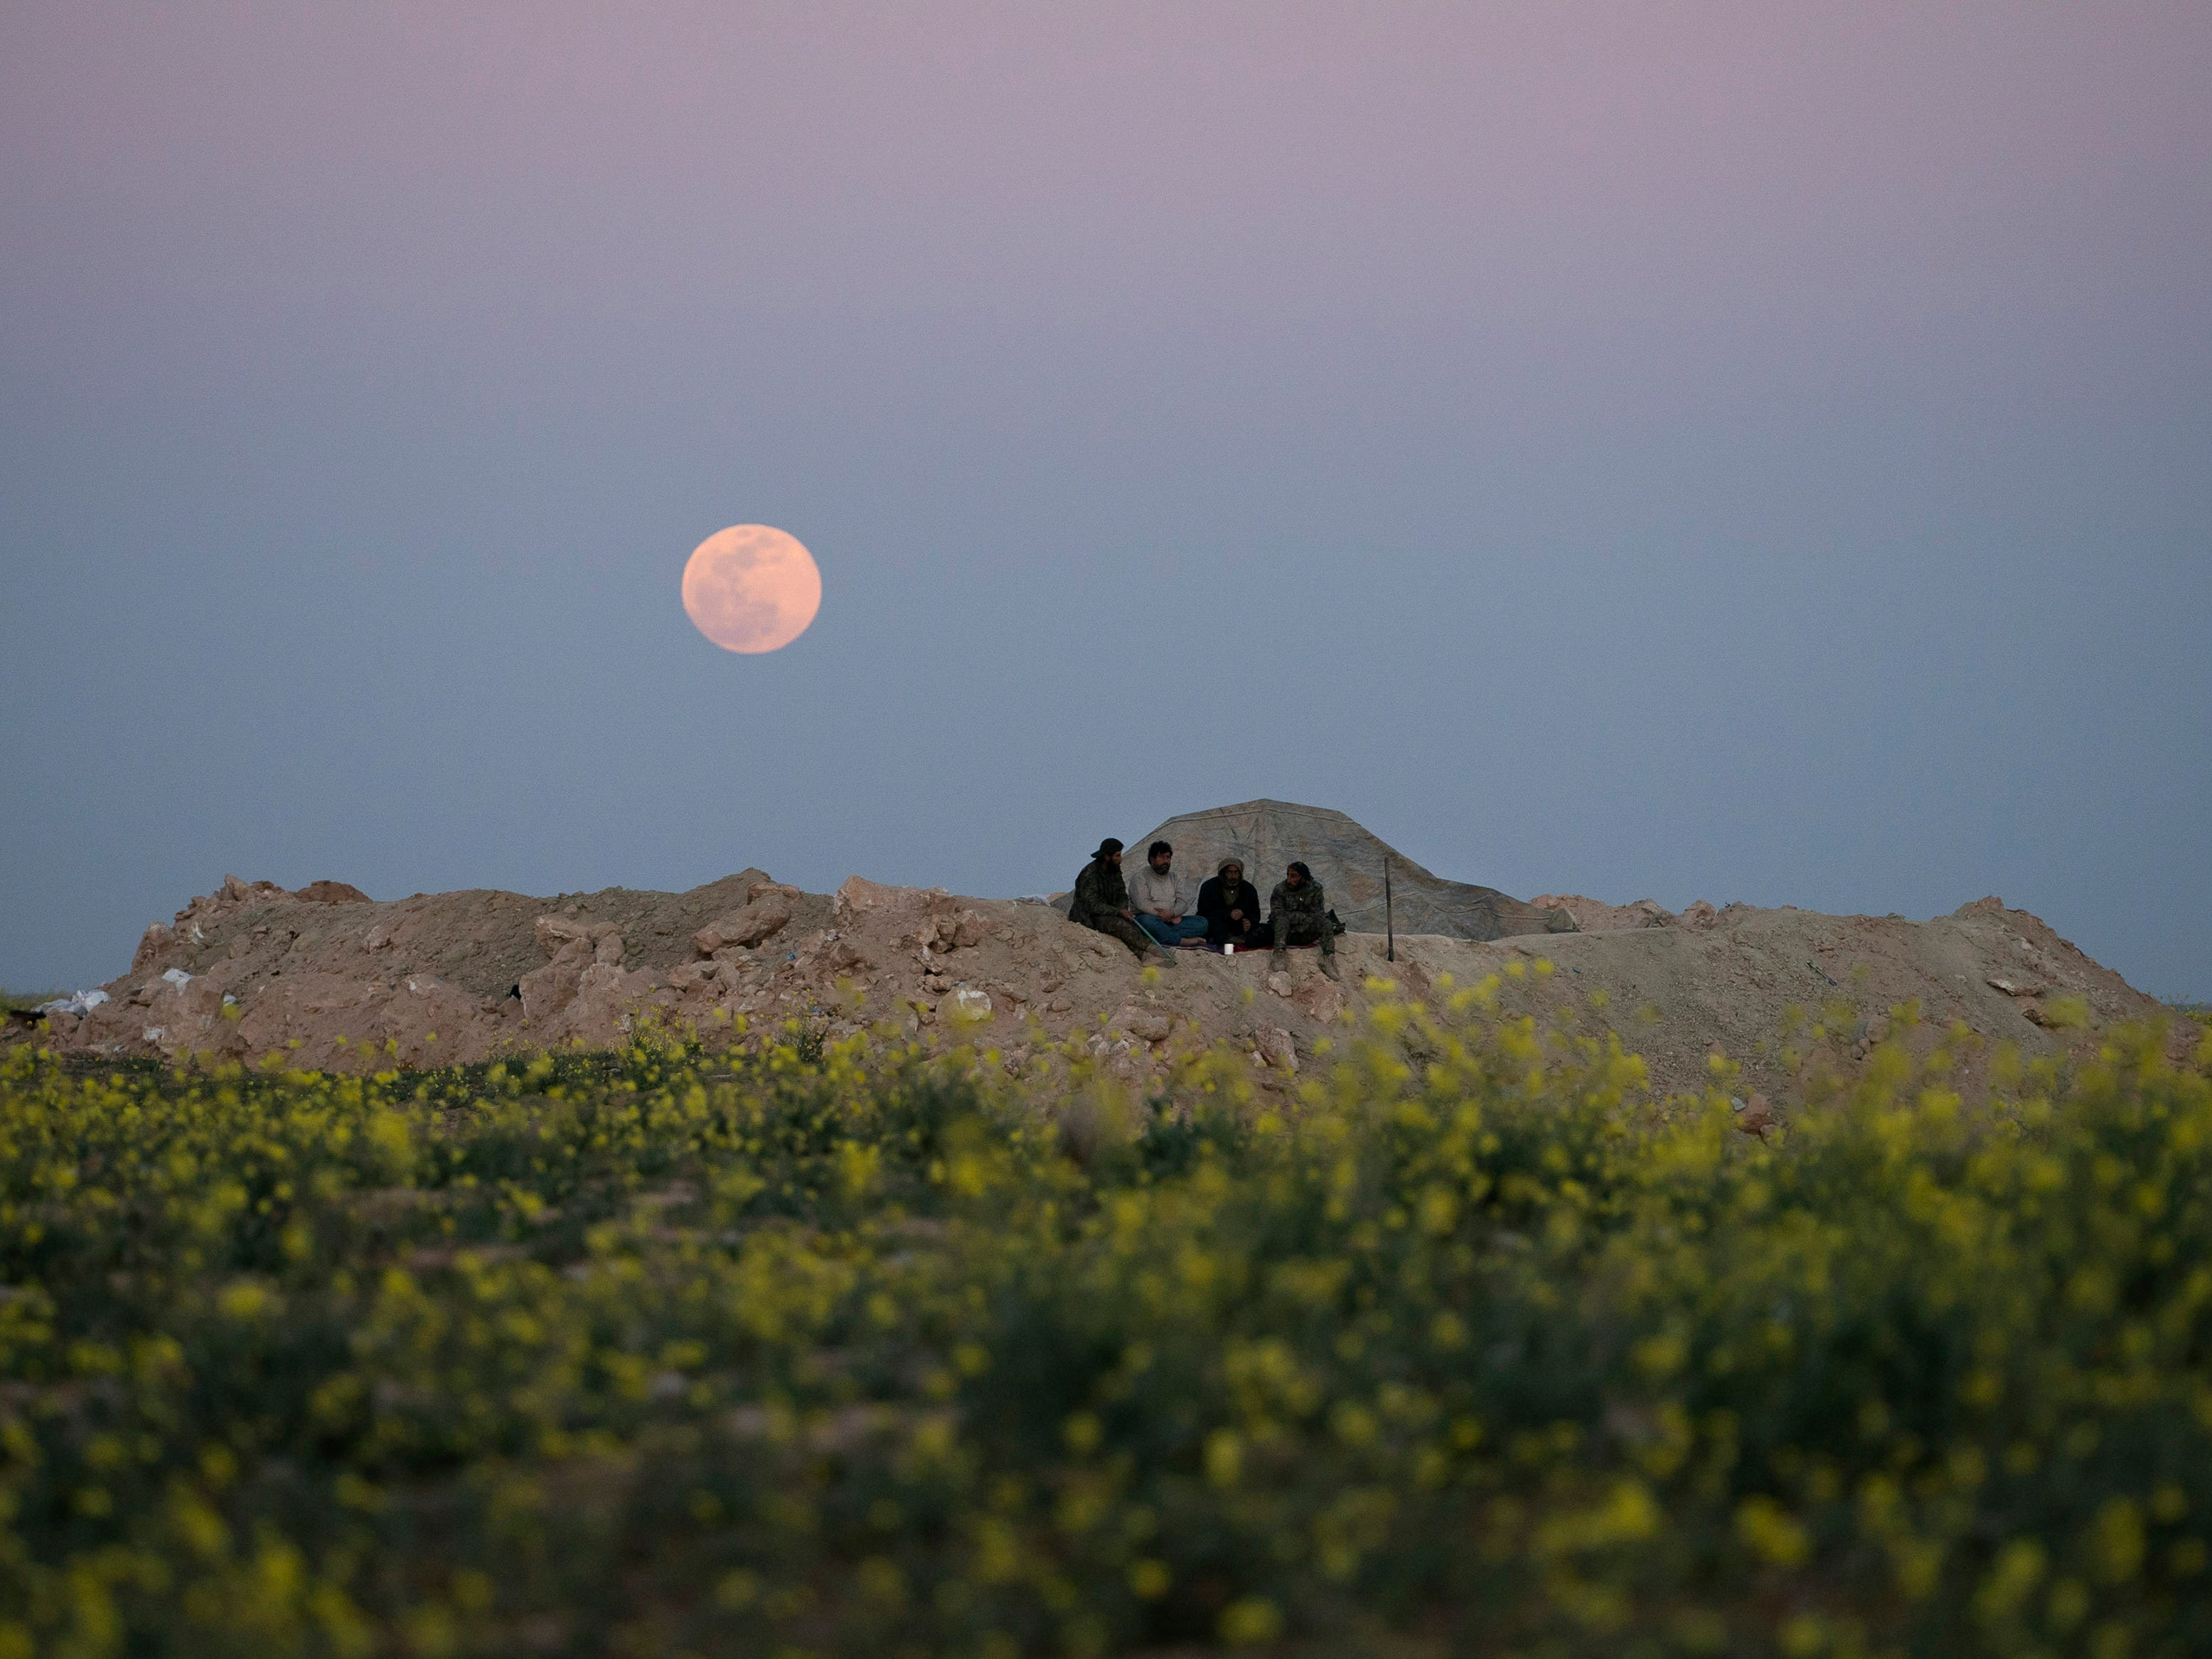 A supermoon rises behind U.S. backed Syrian Democratic Forces fighters at a defense post in the desert near the last land still held by Islamic State militants outside Baghouz, Syria, on  Feb. 19, 2019.